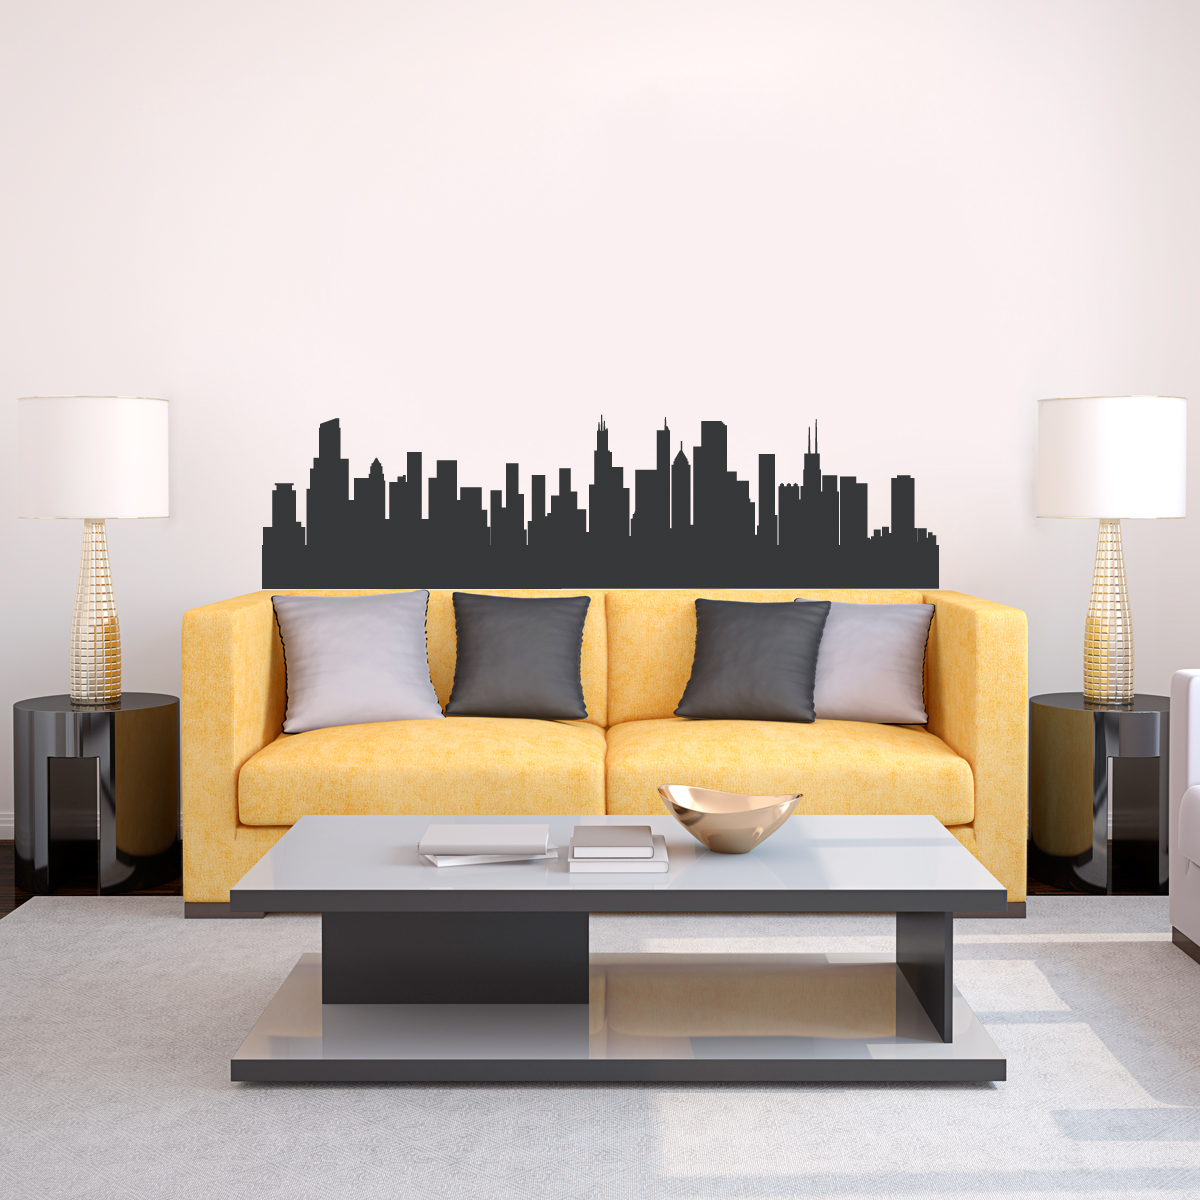 & Chicago Illinois Skyline Vinyl Wall Decal Sticker